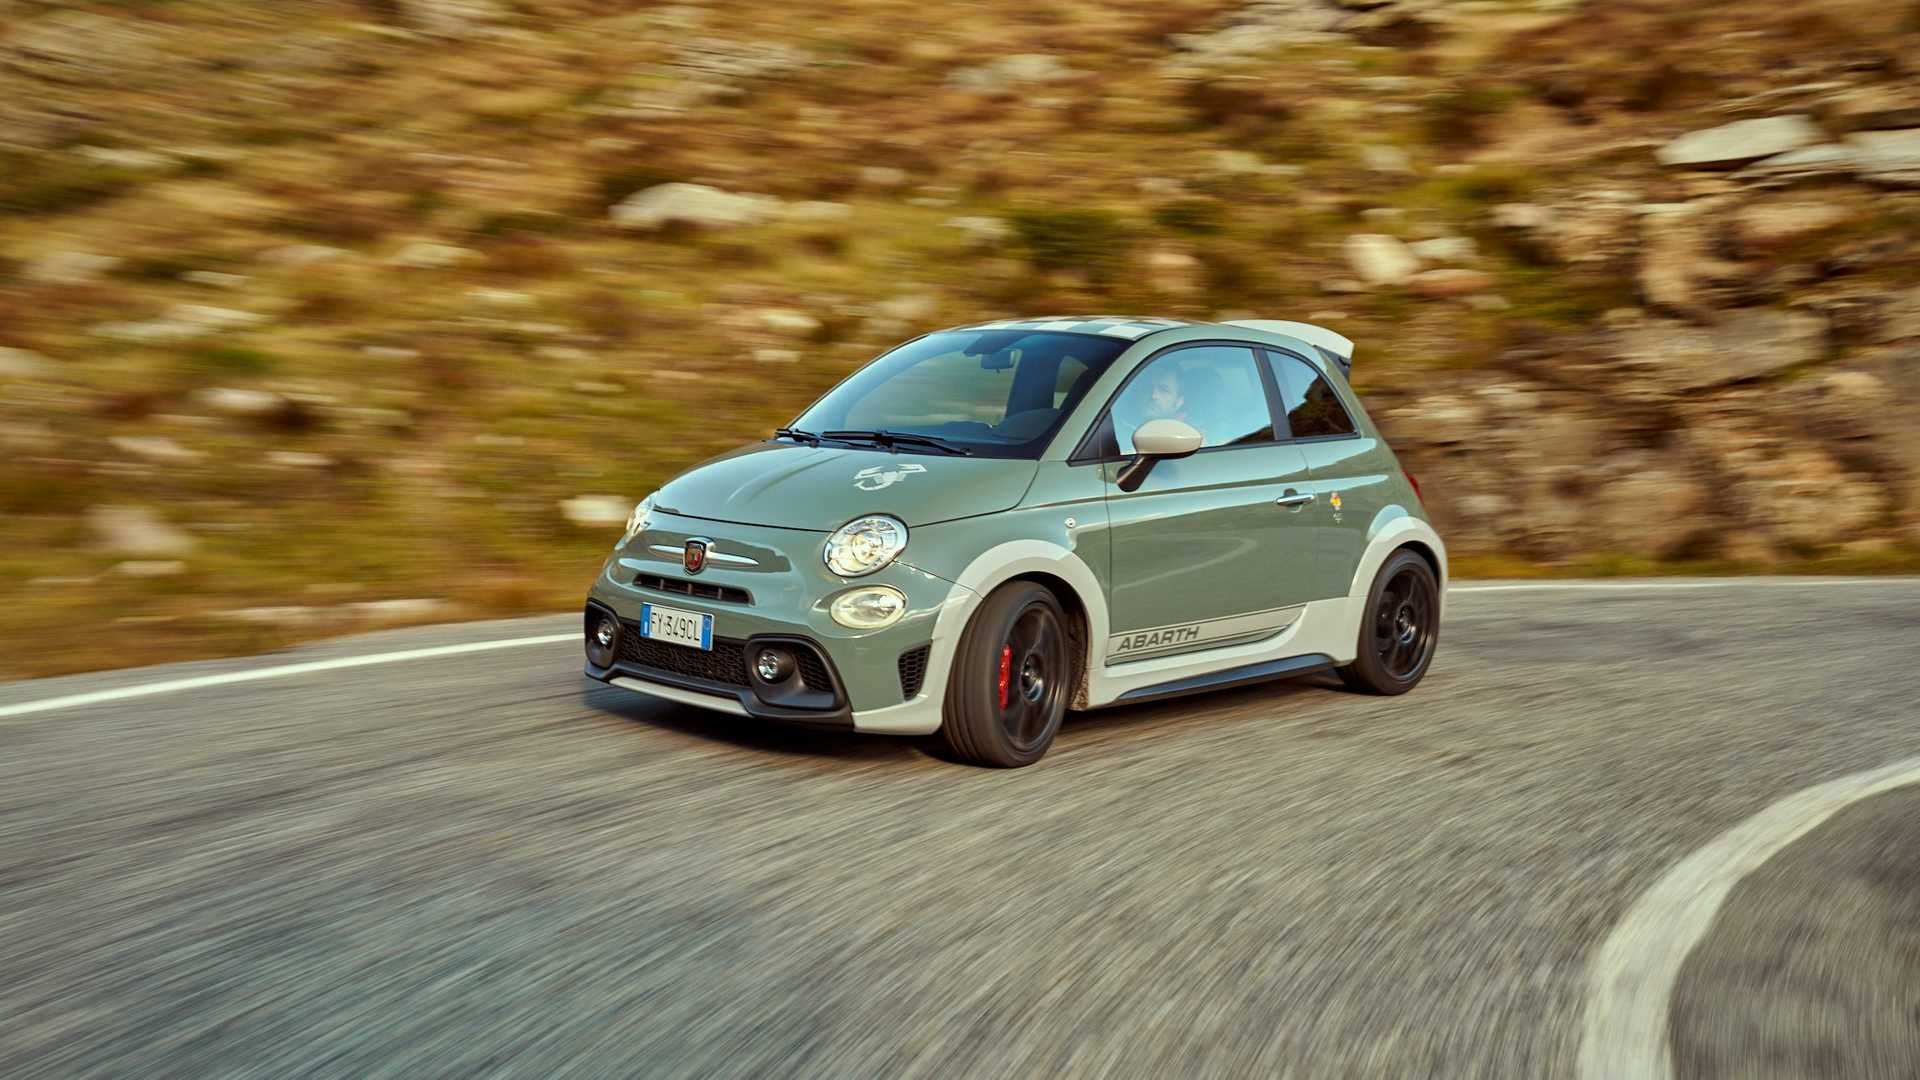 Abarth marks the brand's 70th anniversary in 2019, and what better way to celebrate this milestone if not by creating the perfect spoiler.